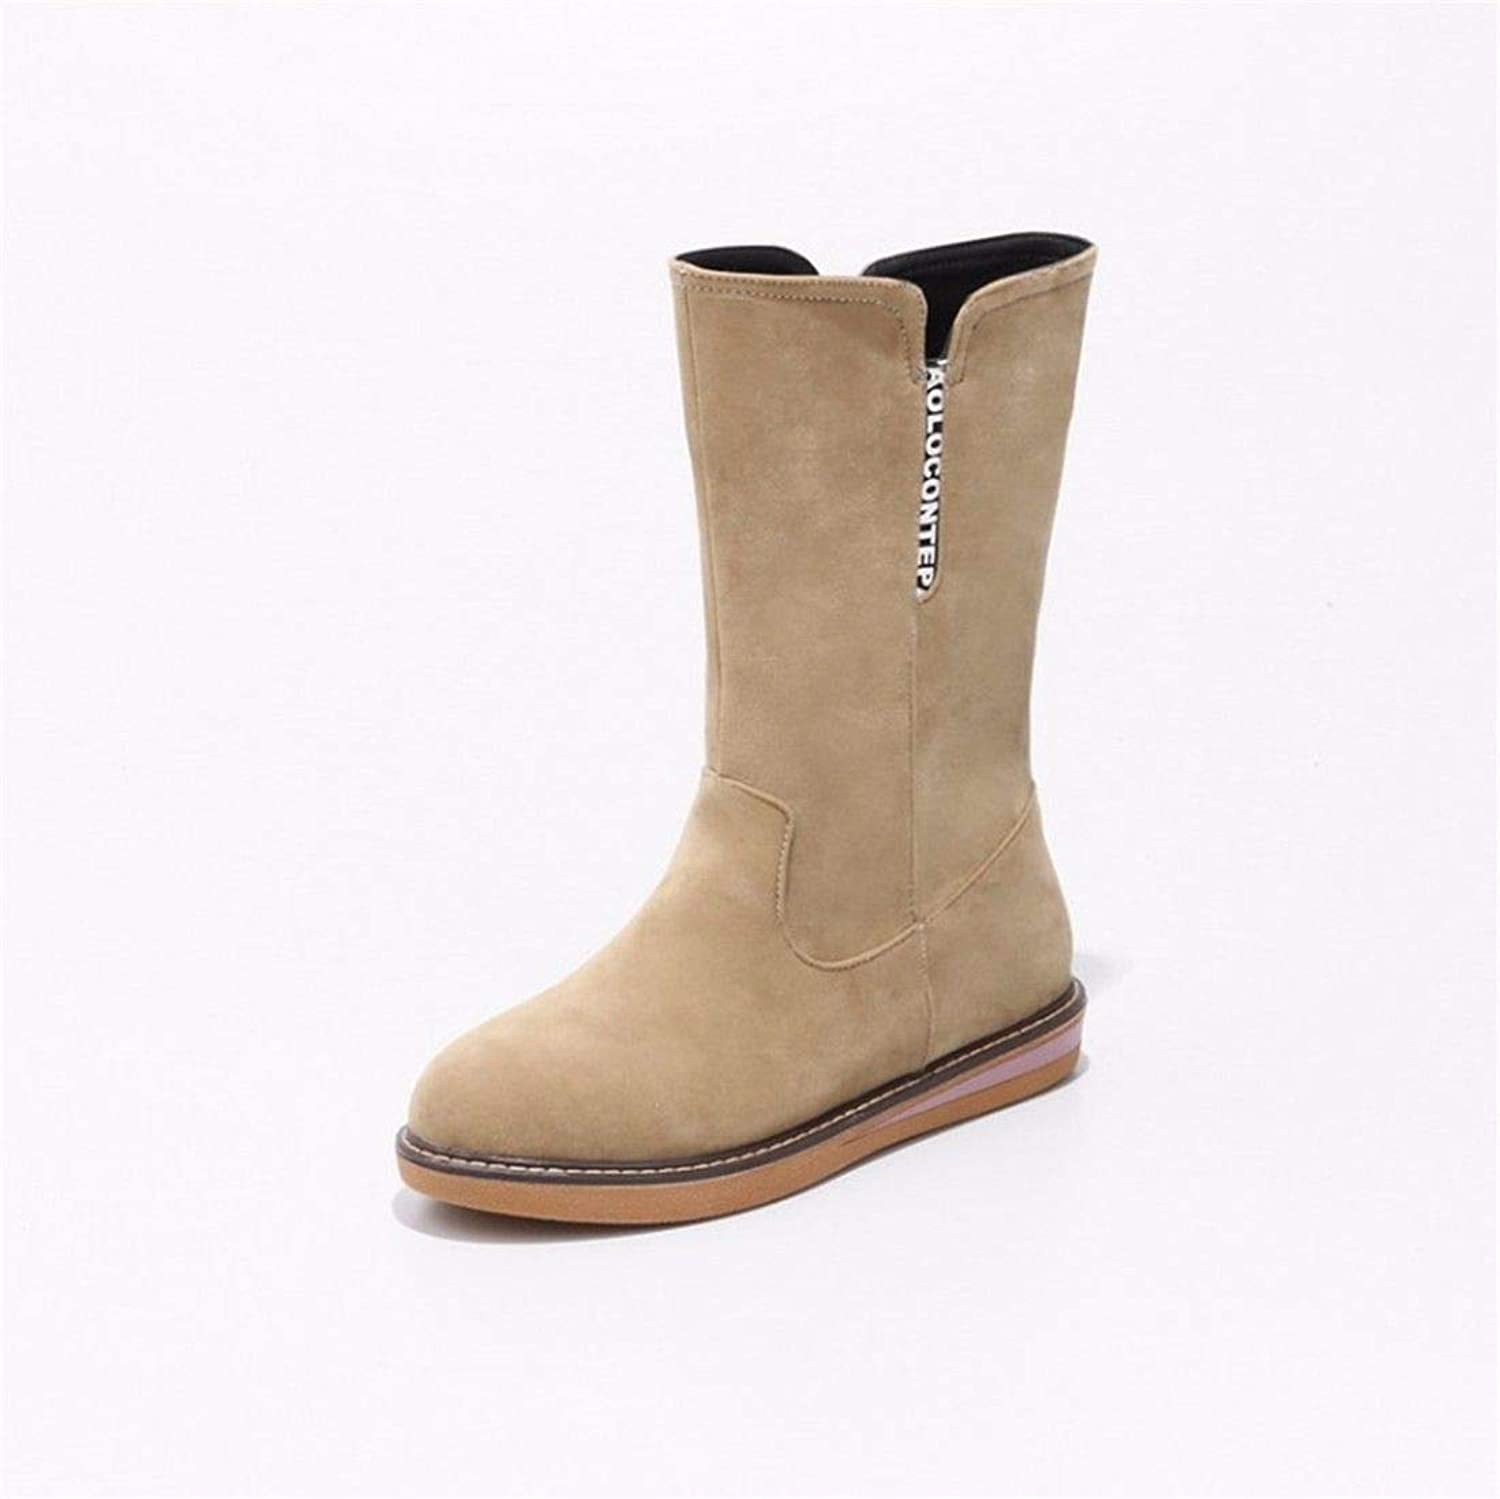 Autumn and Winter Sweet Round Head Low Heel Big Size Snow Boots